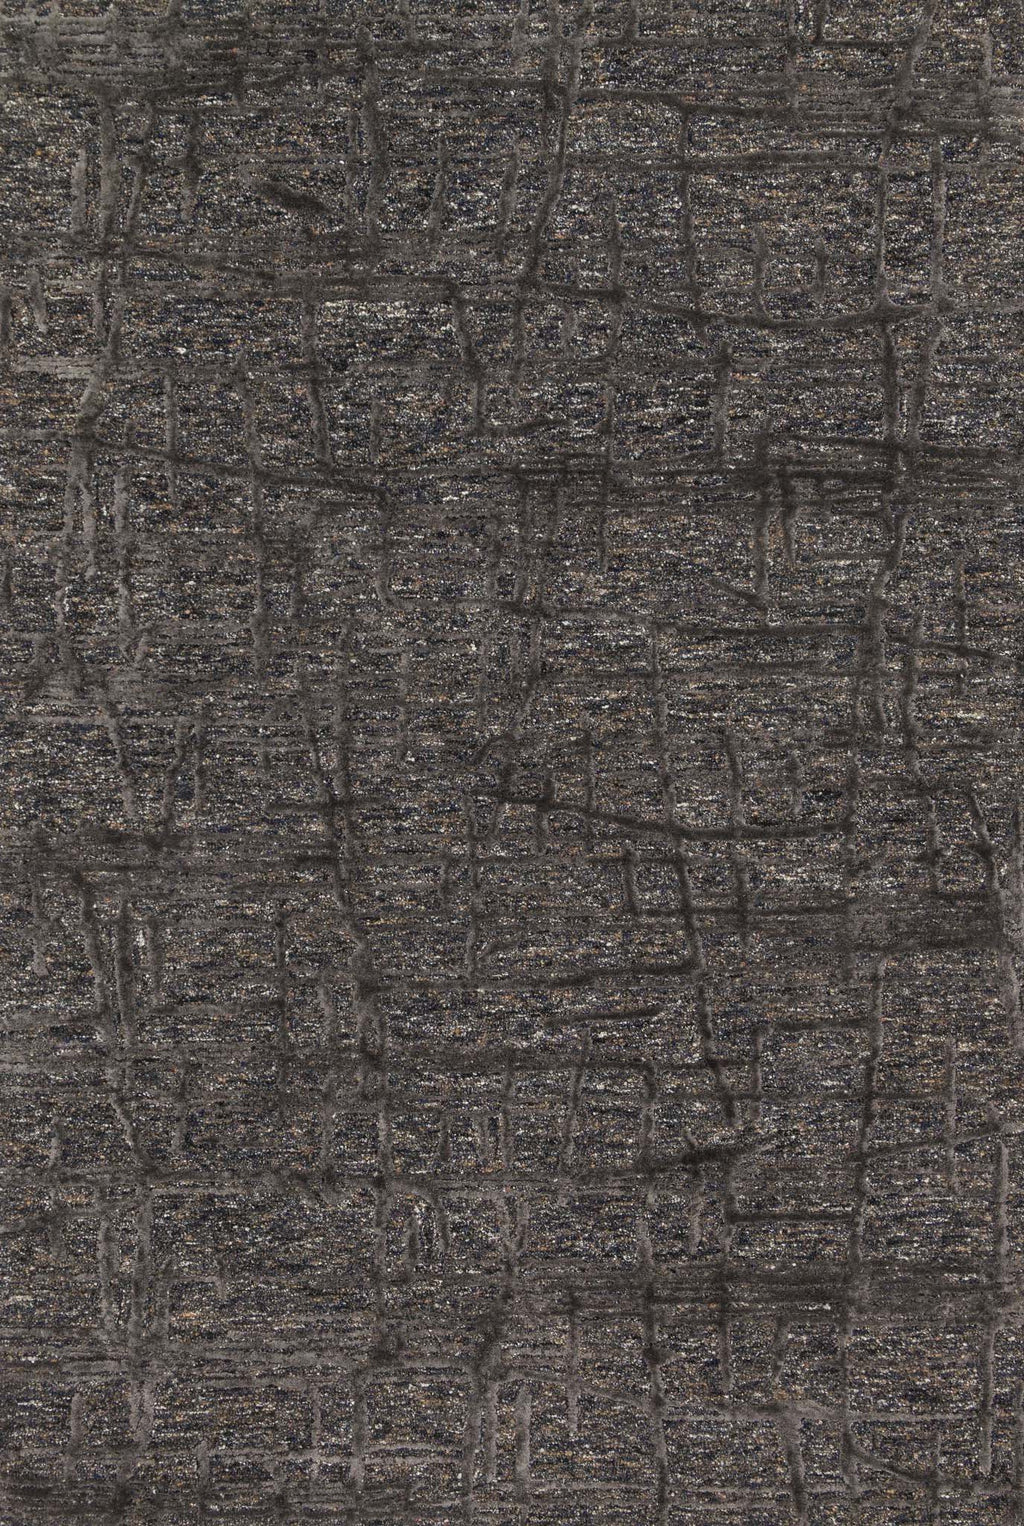 JUNEAU Collection Rug  in  CHARCOAL / CHARCOAL Gray Small Hand-Tufted Viscose